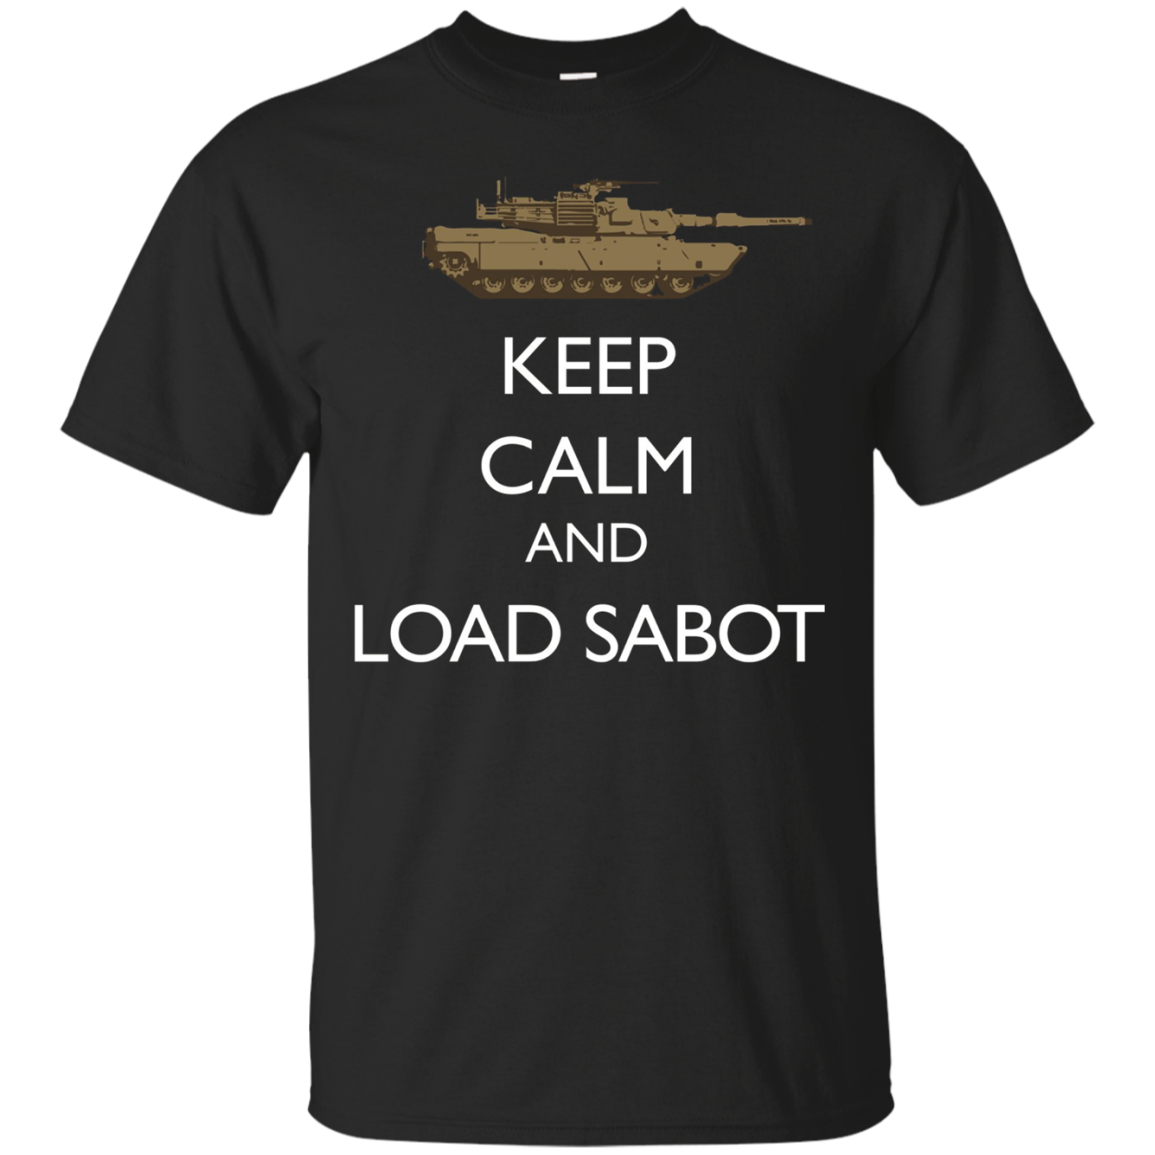 Keep Calm And Load Sabot Military Tanker M1 Abrams T-Shirt